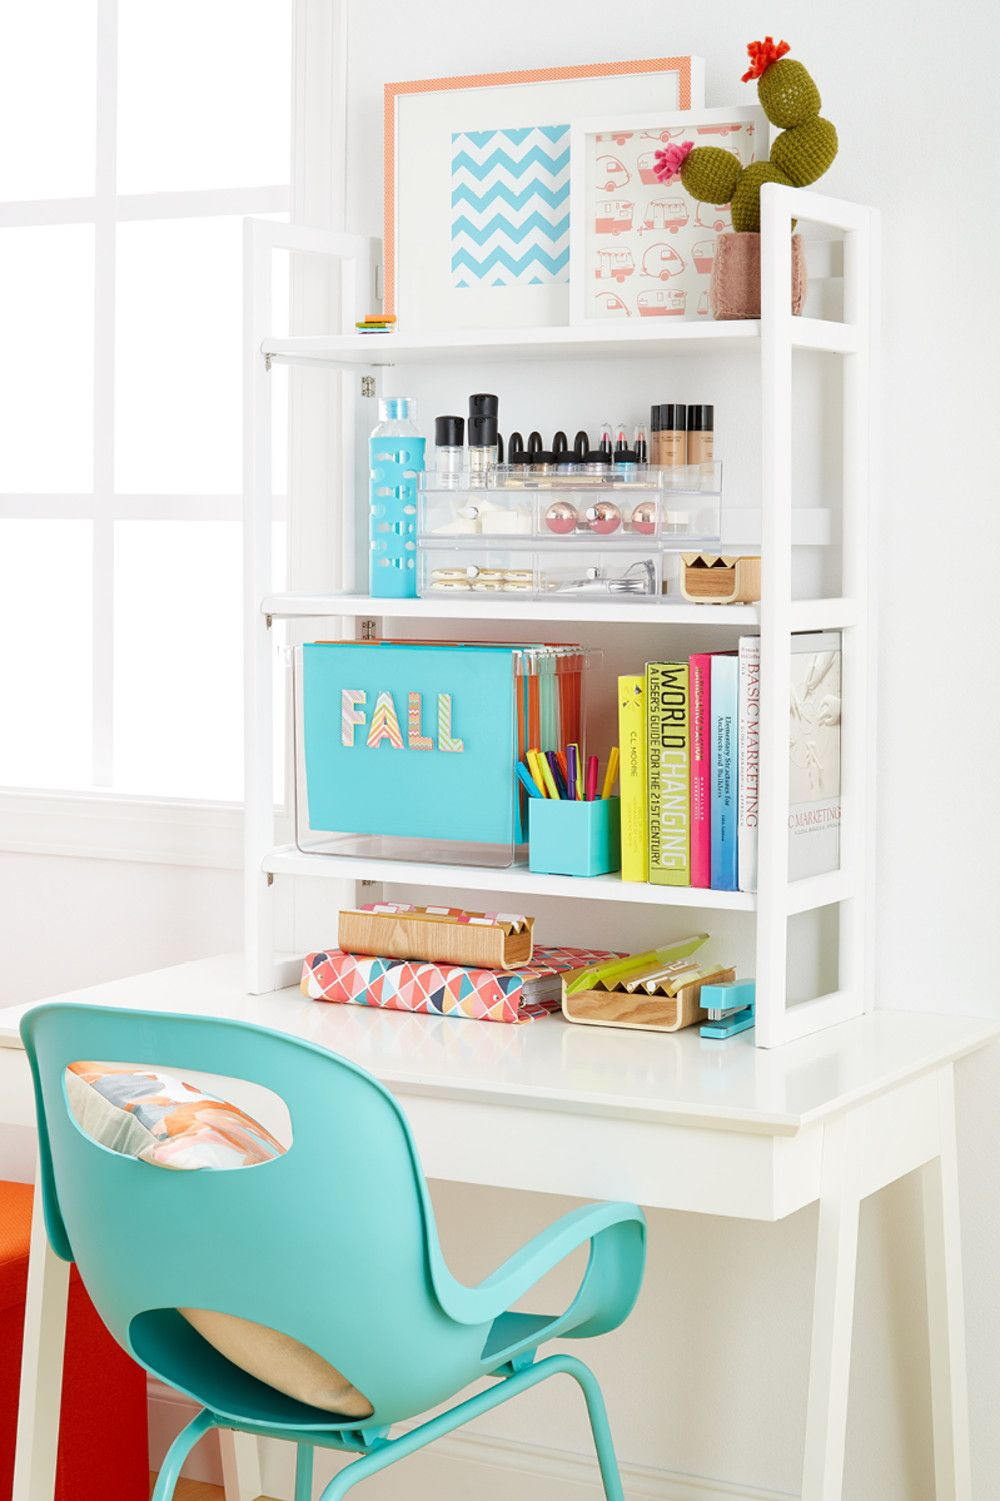 container store dorm on on campus organization made easy dorm room organization dorm hacks dorm desk dorm room organization